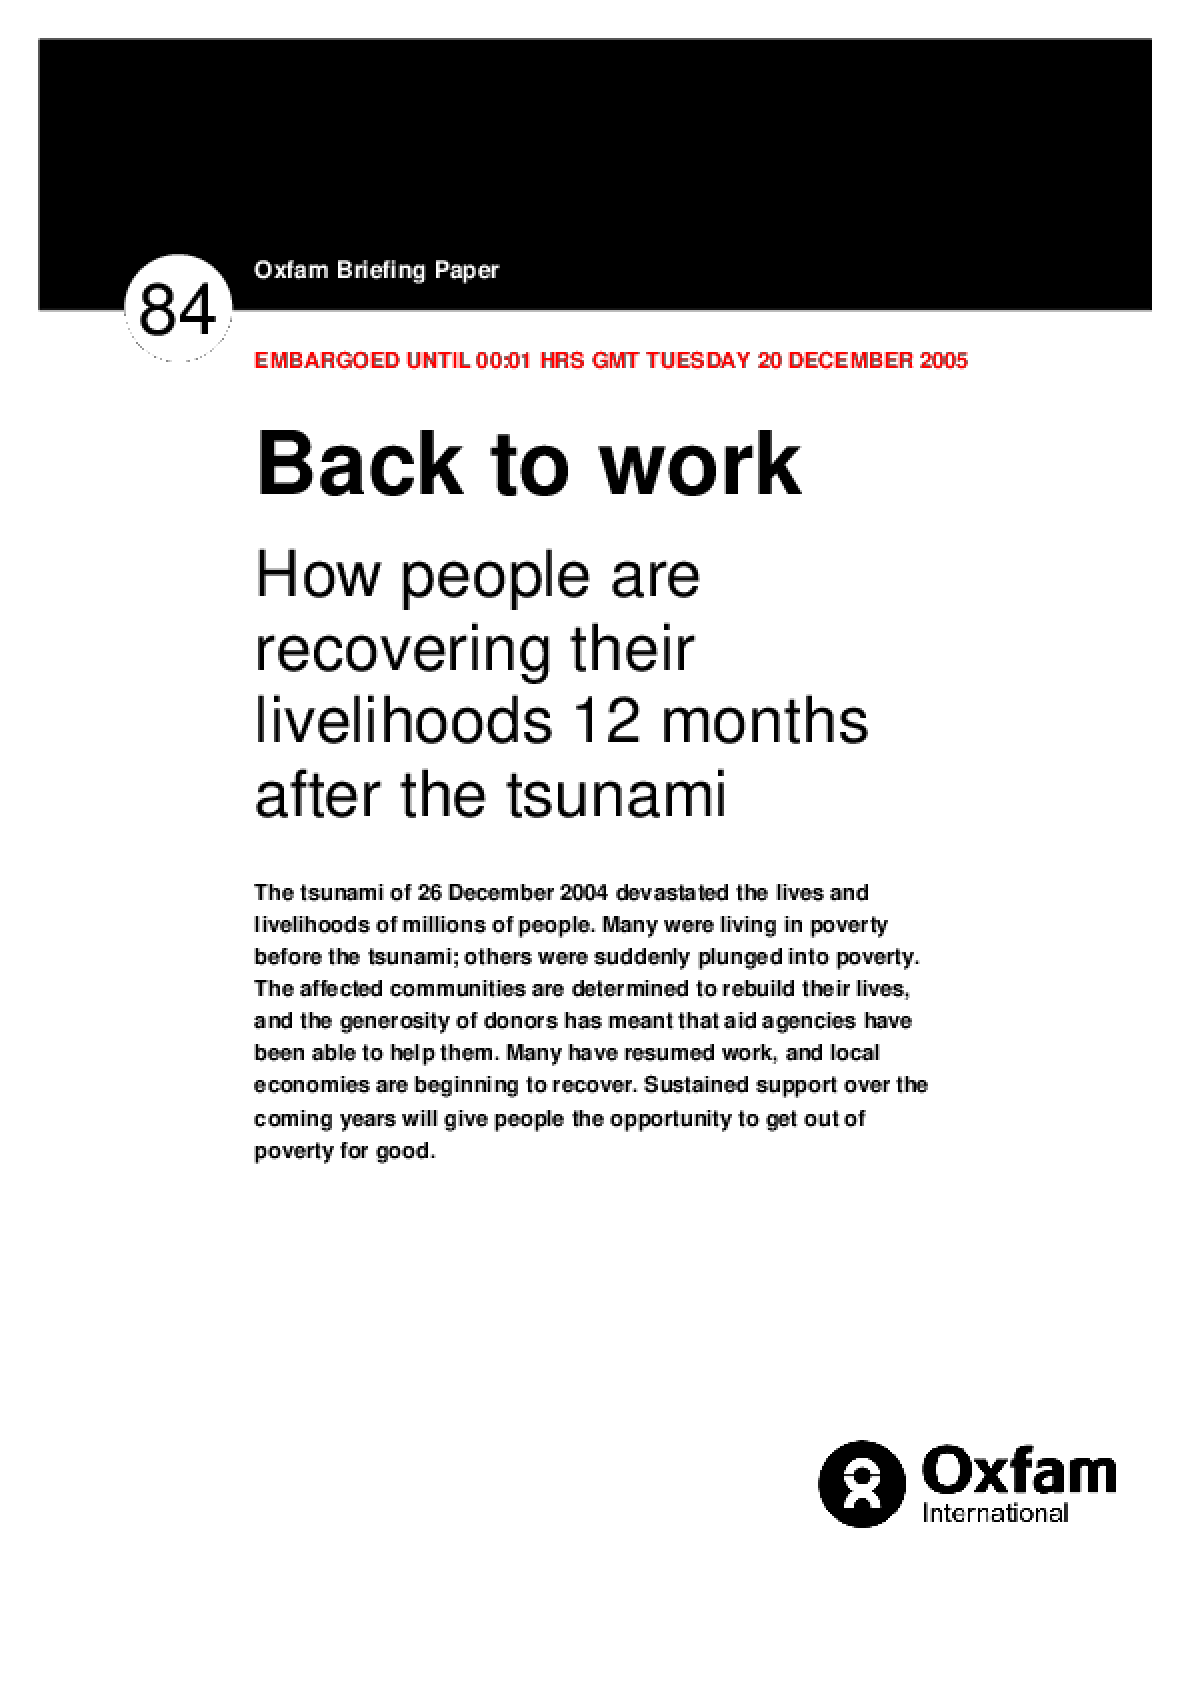 Back to Work: How people are recovering their livelihoods 12 months after the tsunami